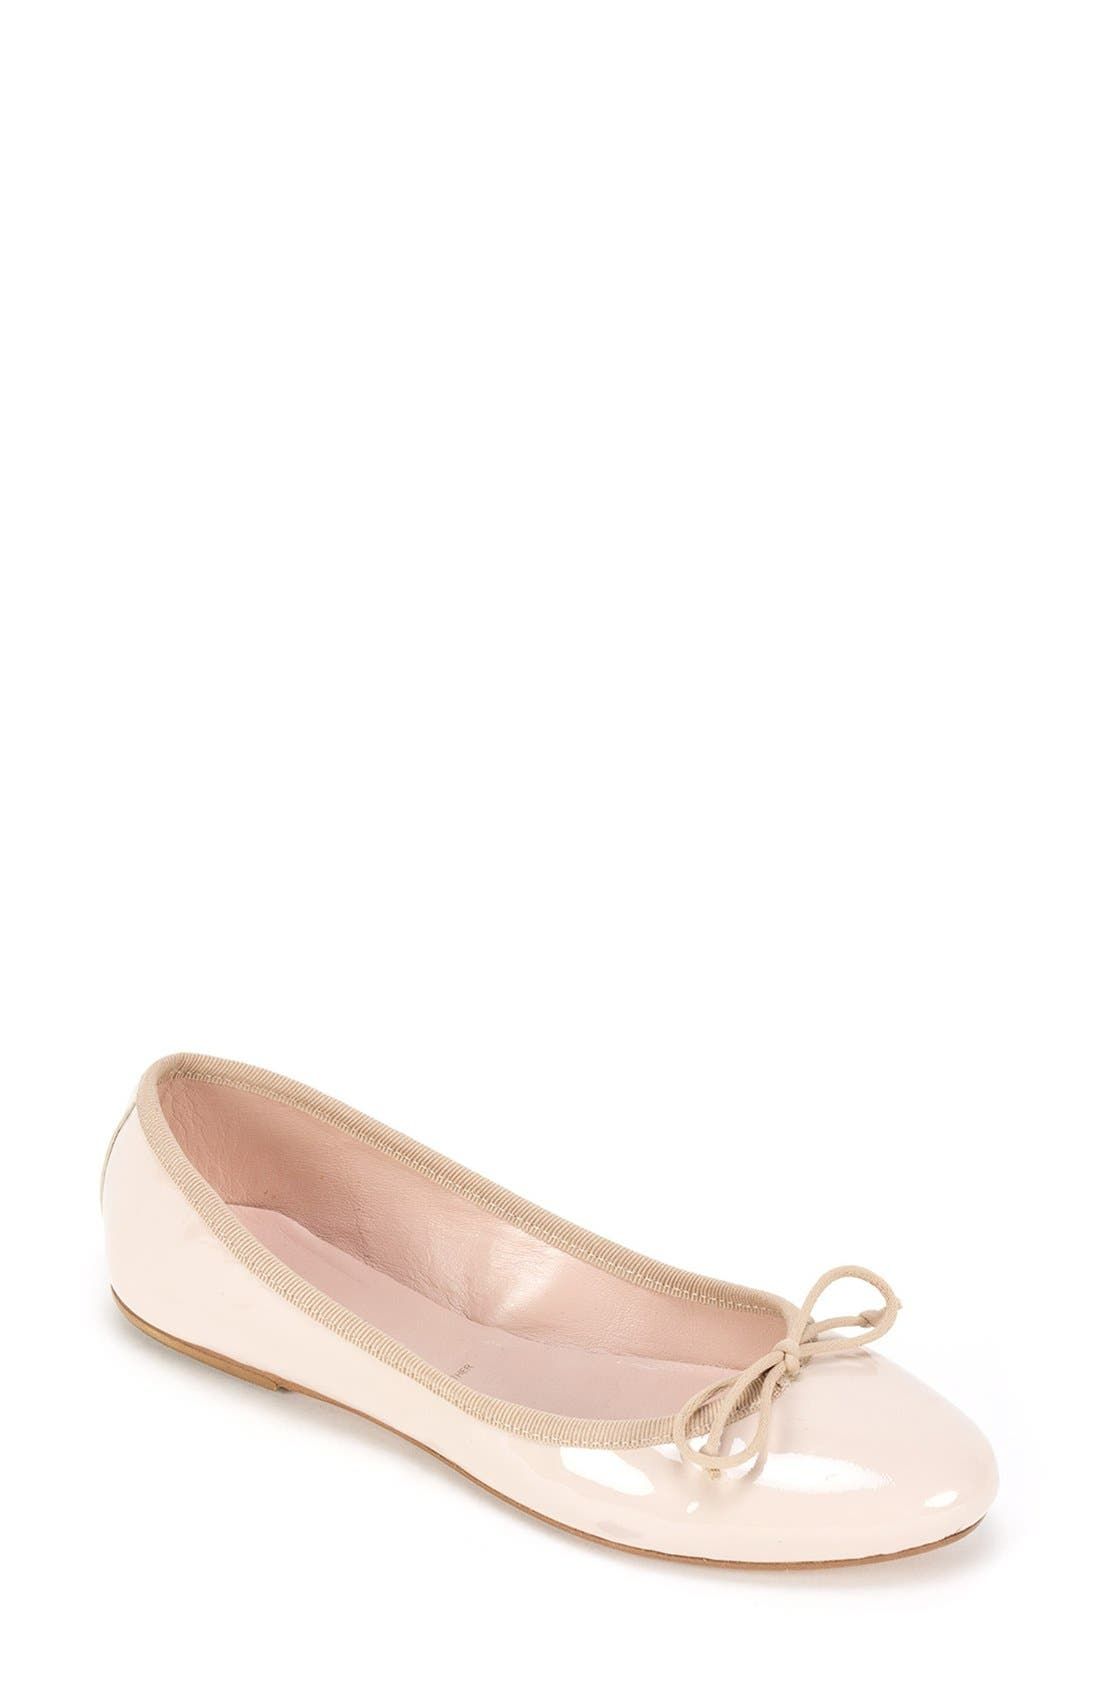 'Kendall' Ballet Flat,                         Main,                         color, Nude Patent Leather